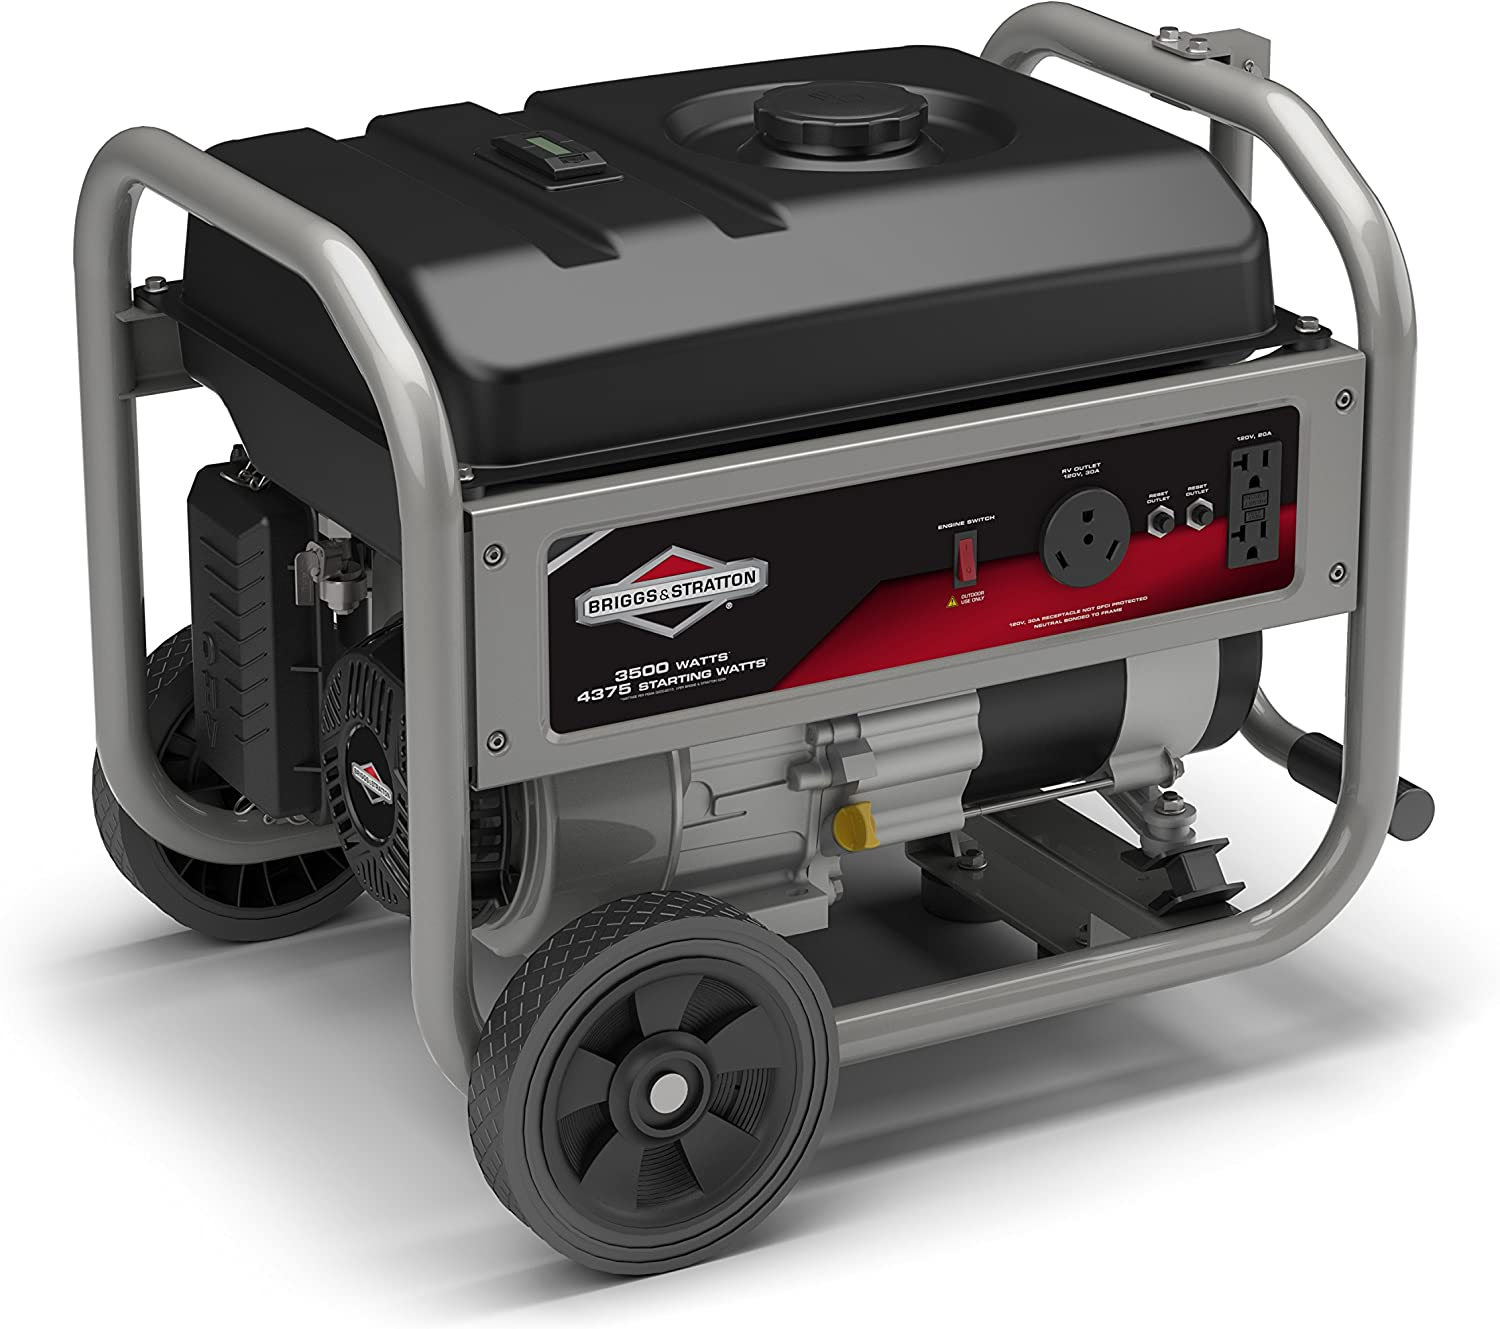 Briggs Stratton 30680 3500 Running Watts 4375 Starting Watts 208cc Gas Powered Portable Generator with RV Outlet